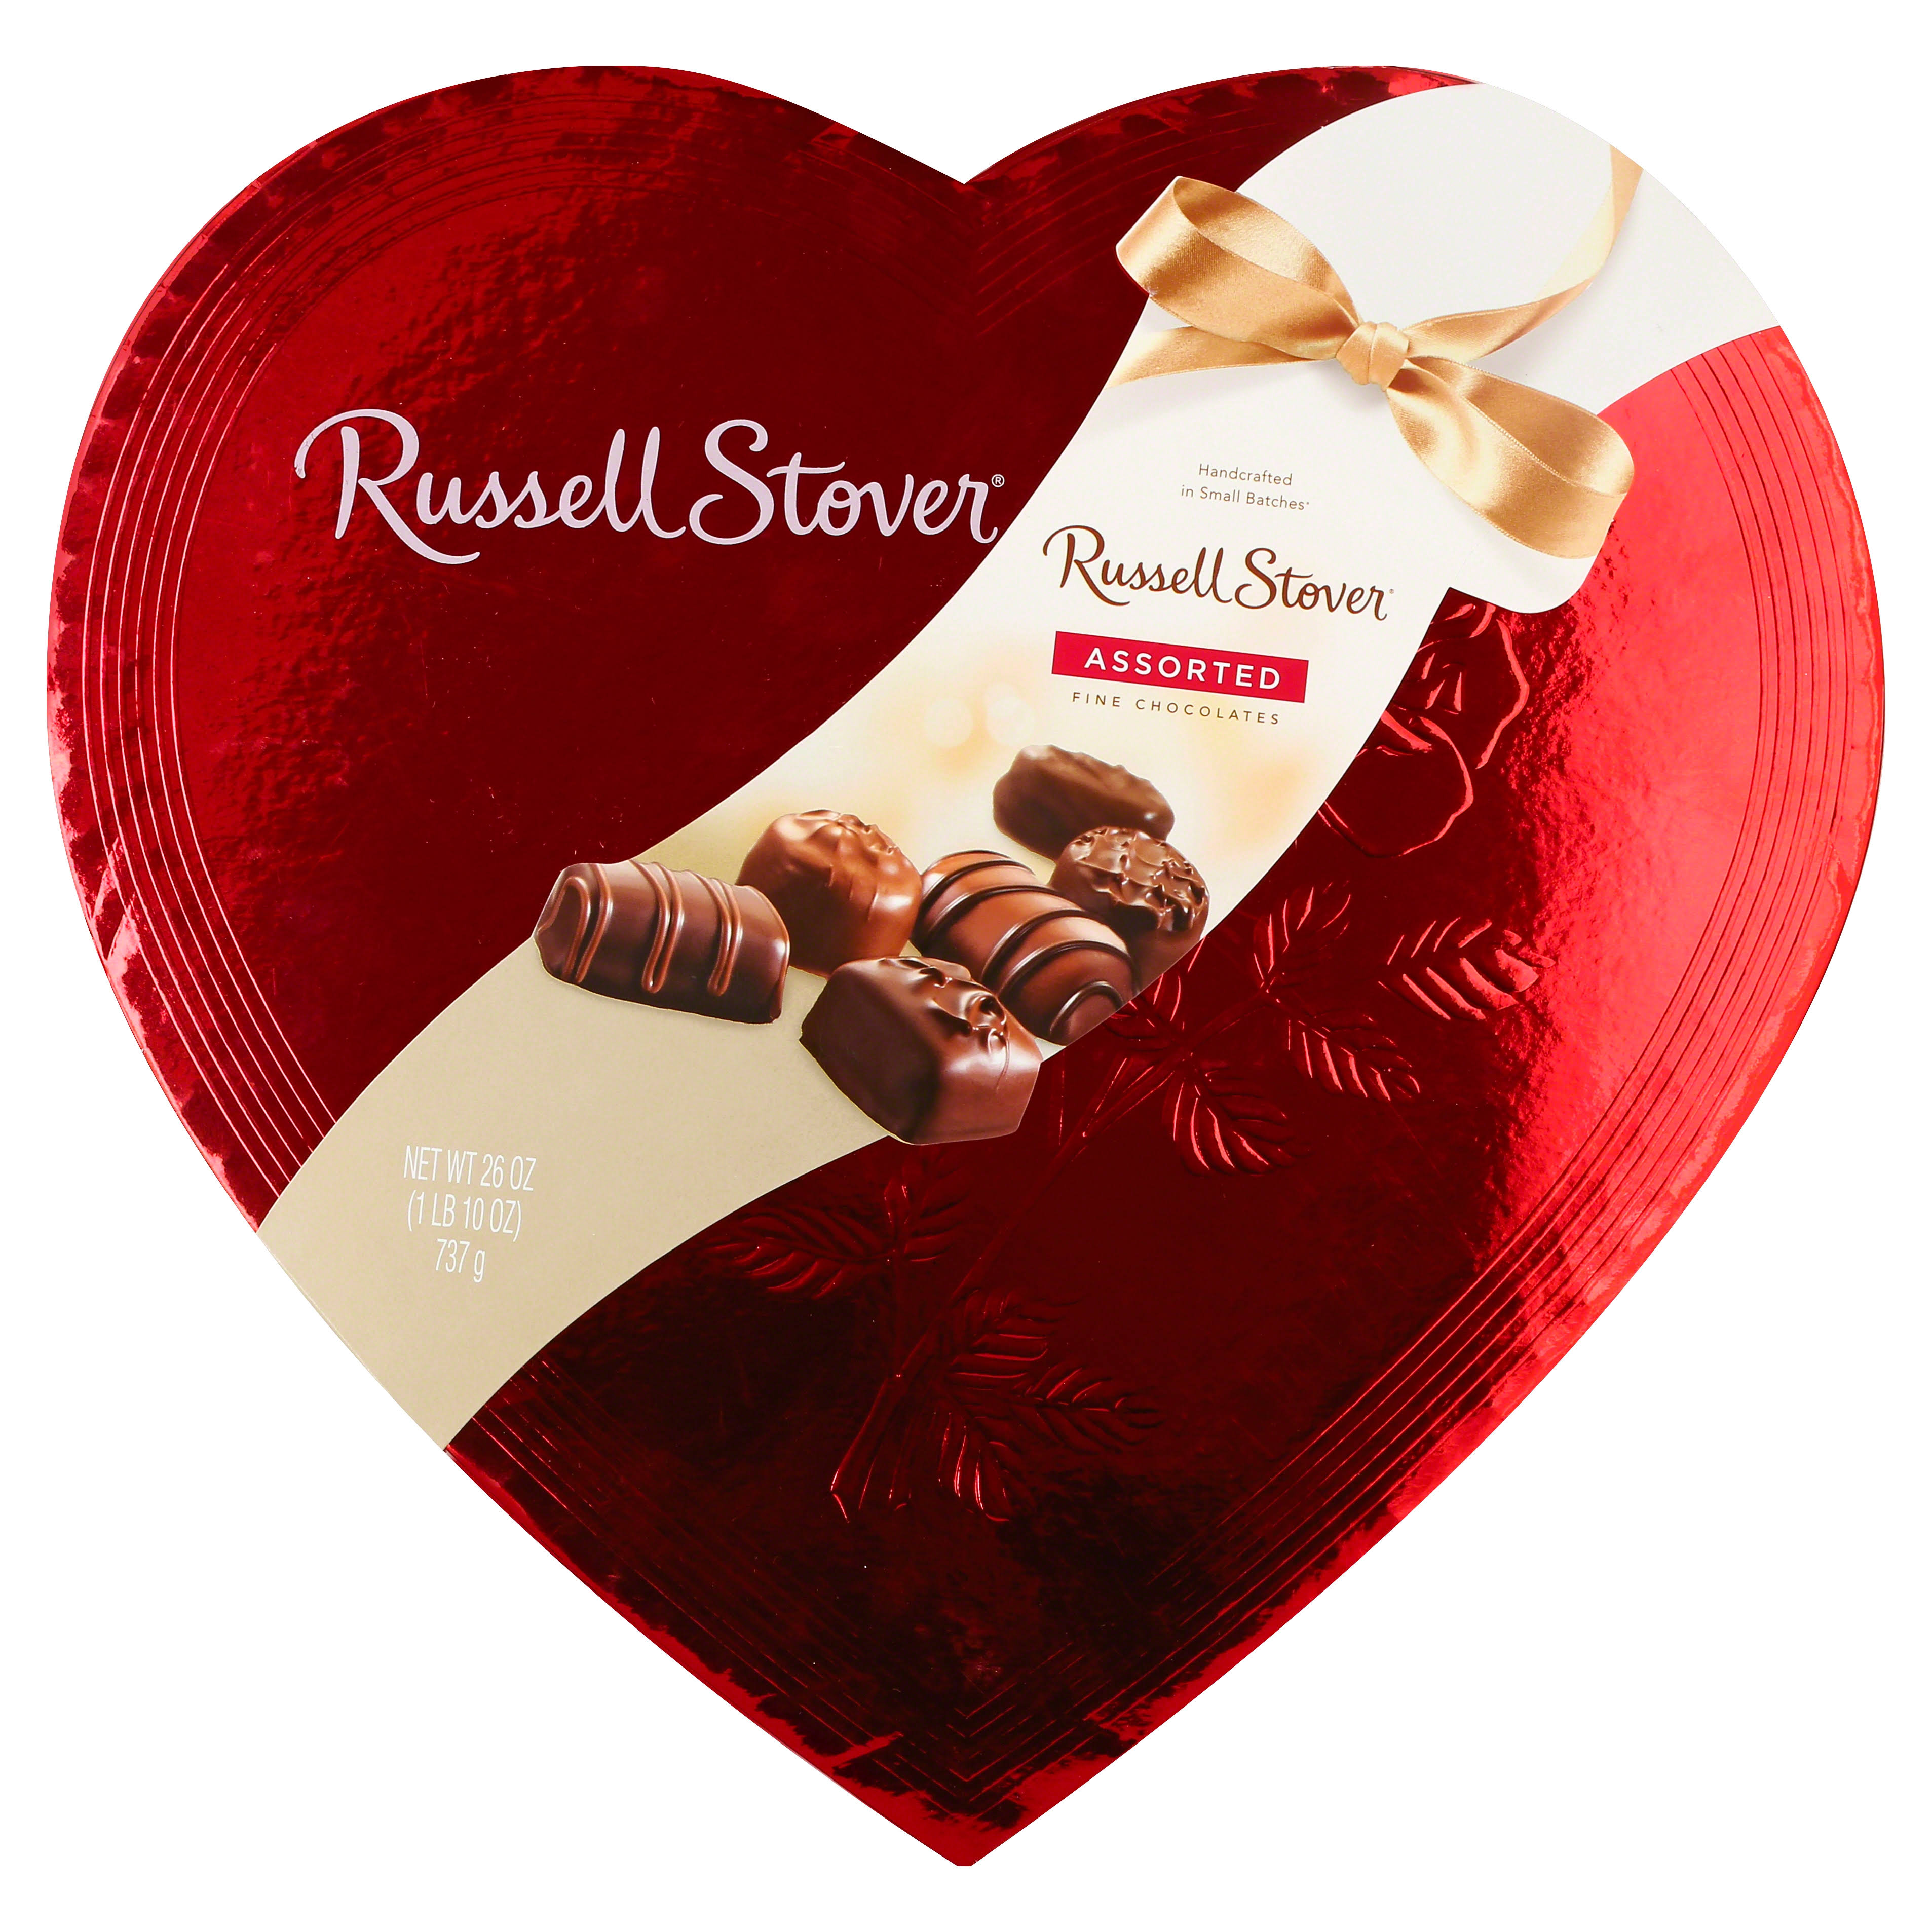 Russell Stover Assorted Fine Chocolates - 26oz